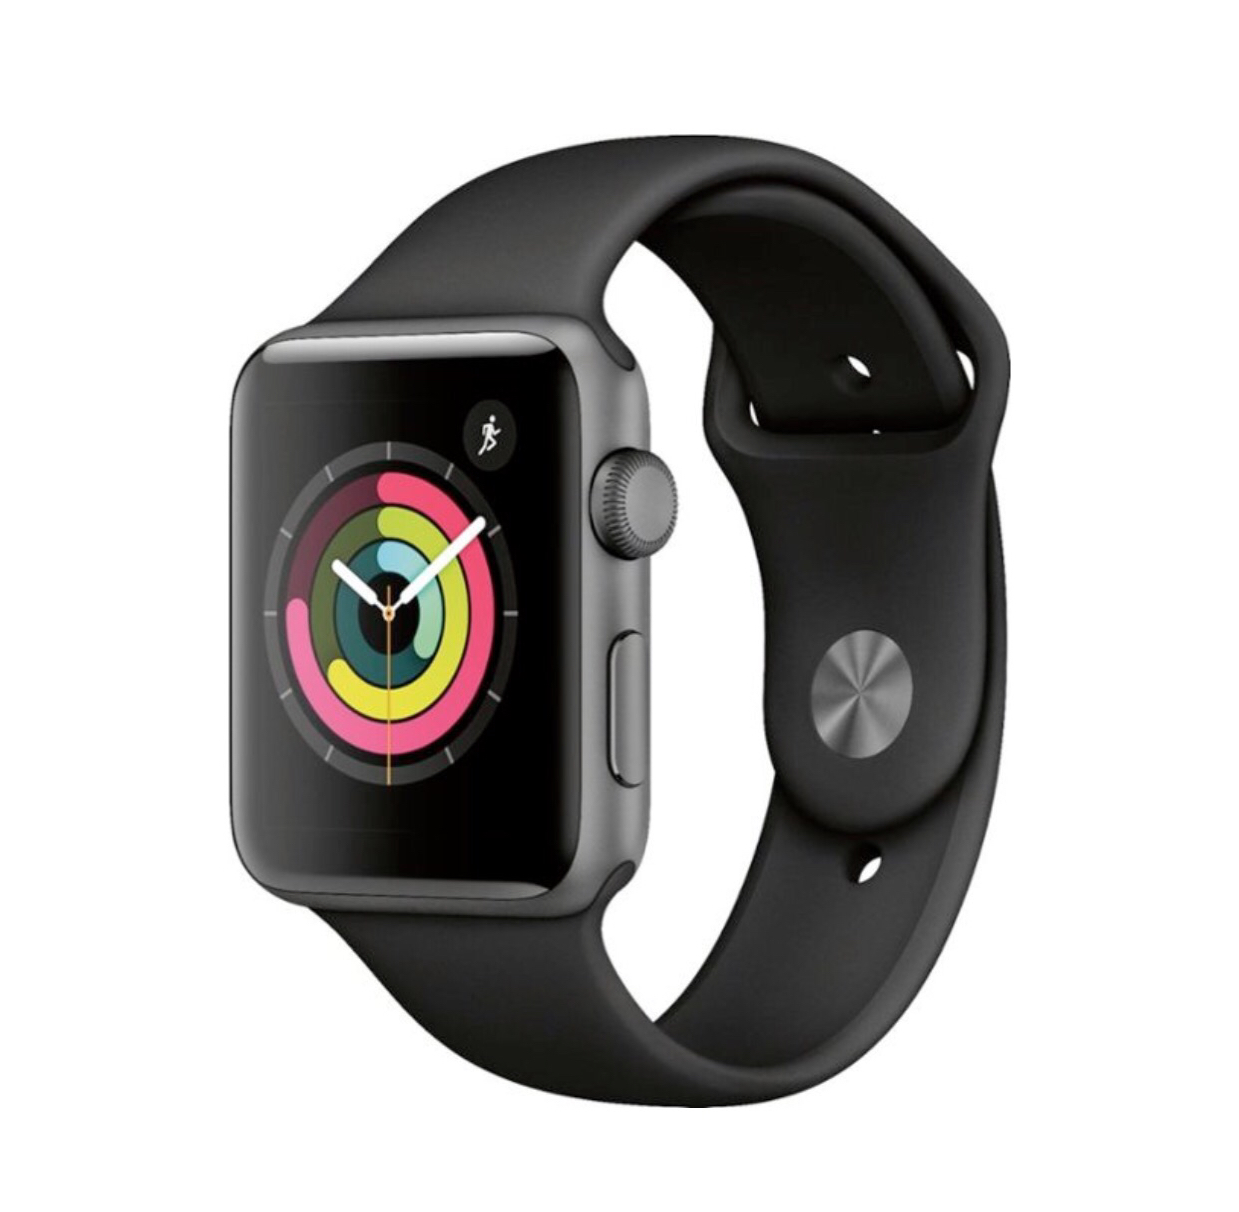 Apple Watch Series 3 (GPS) 42mm Space Gray Aluminum Case - Black Sport Band